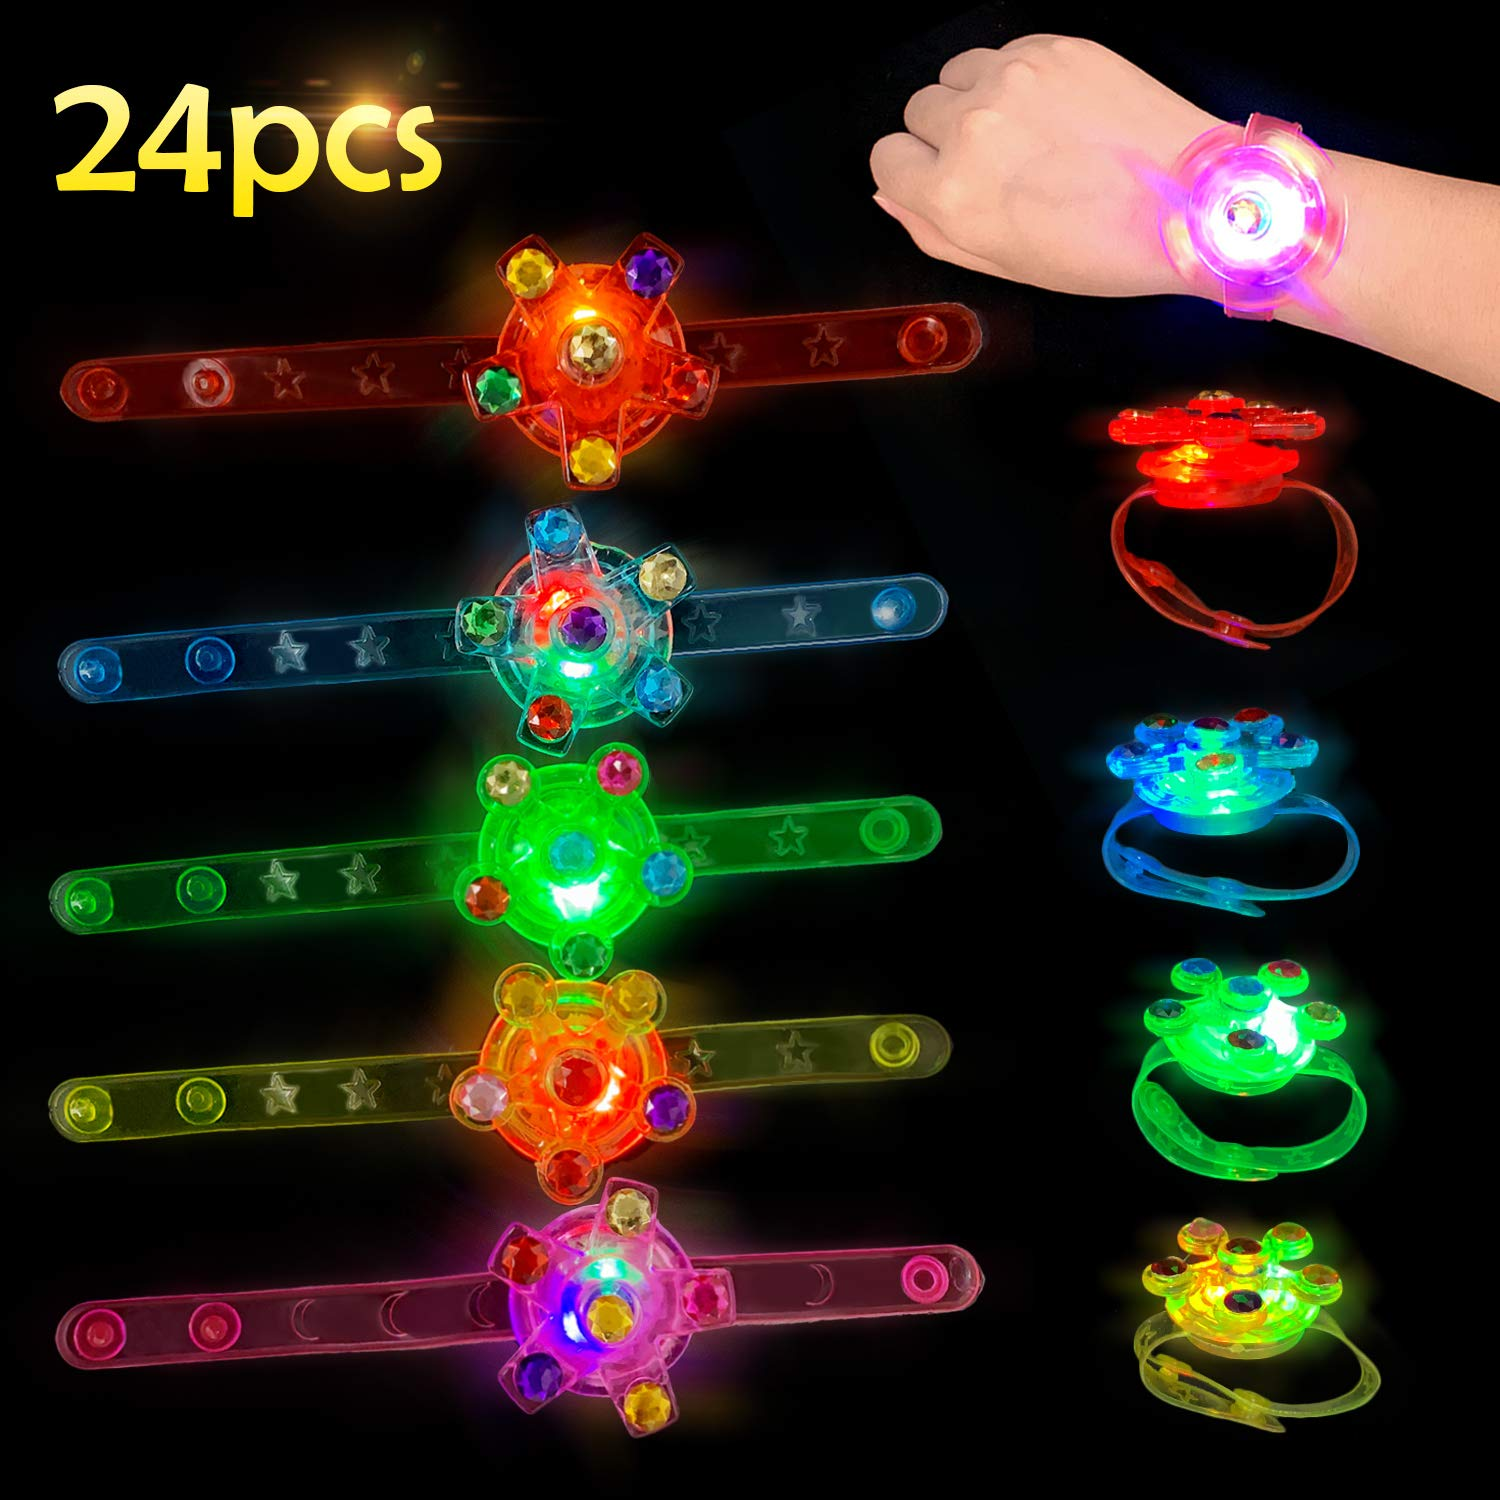 Satkago 24 Pcs LED Light Up Party Favors Bracelets Rings Birthday Glow Toys for Kids Boys by Satkago